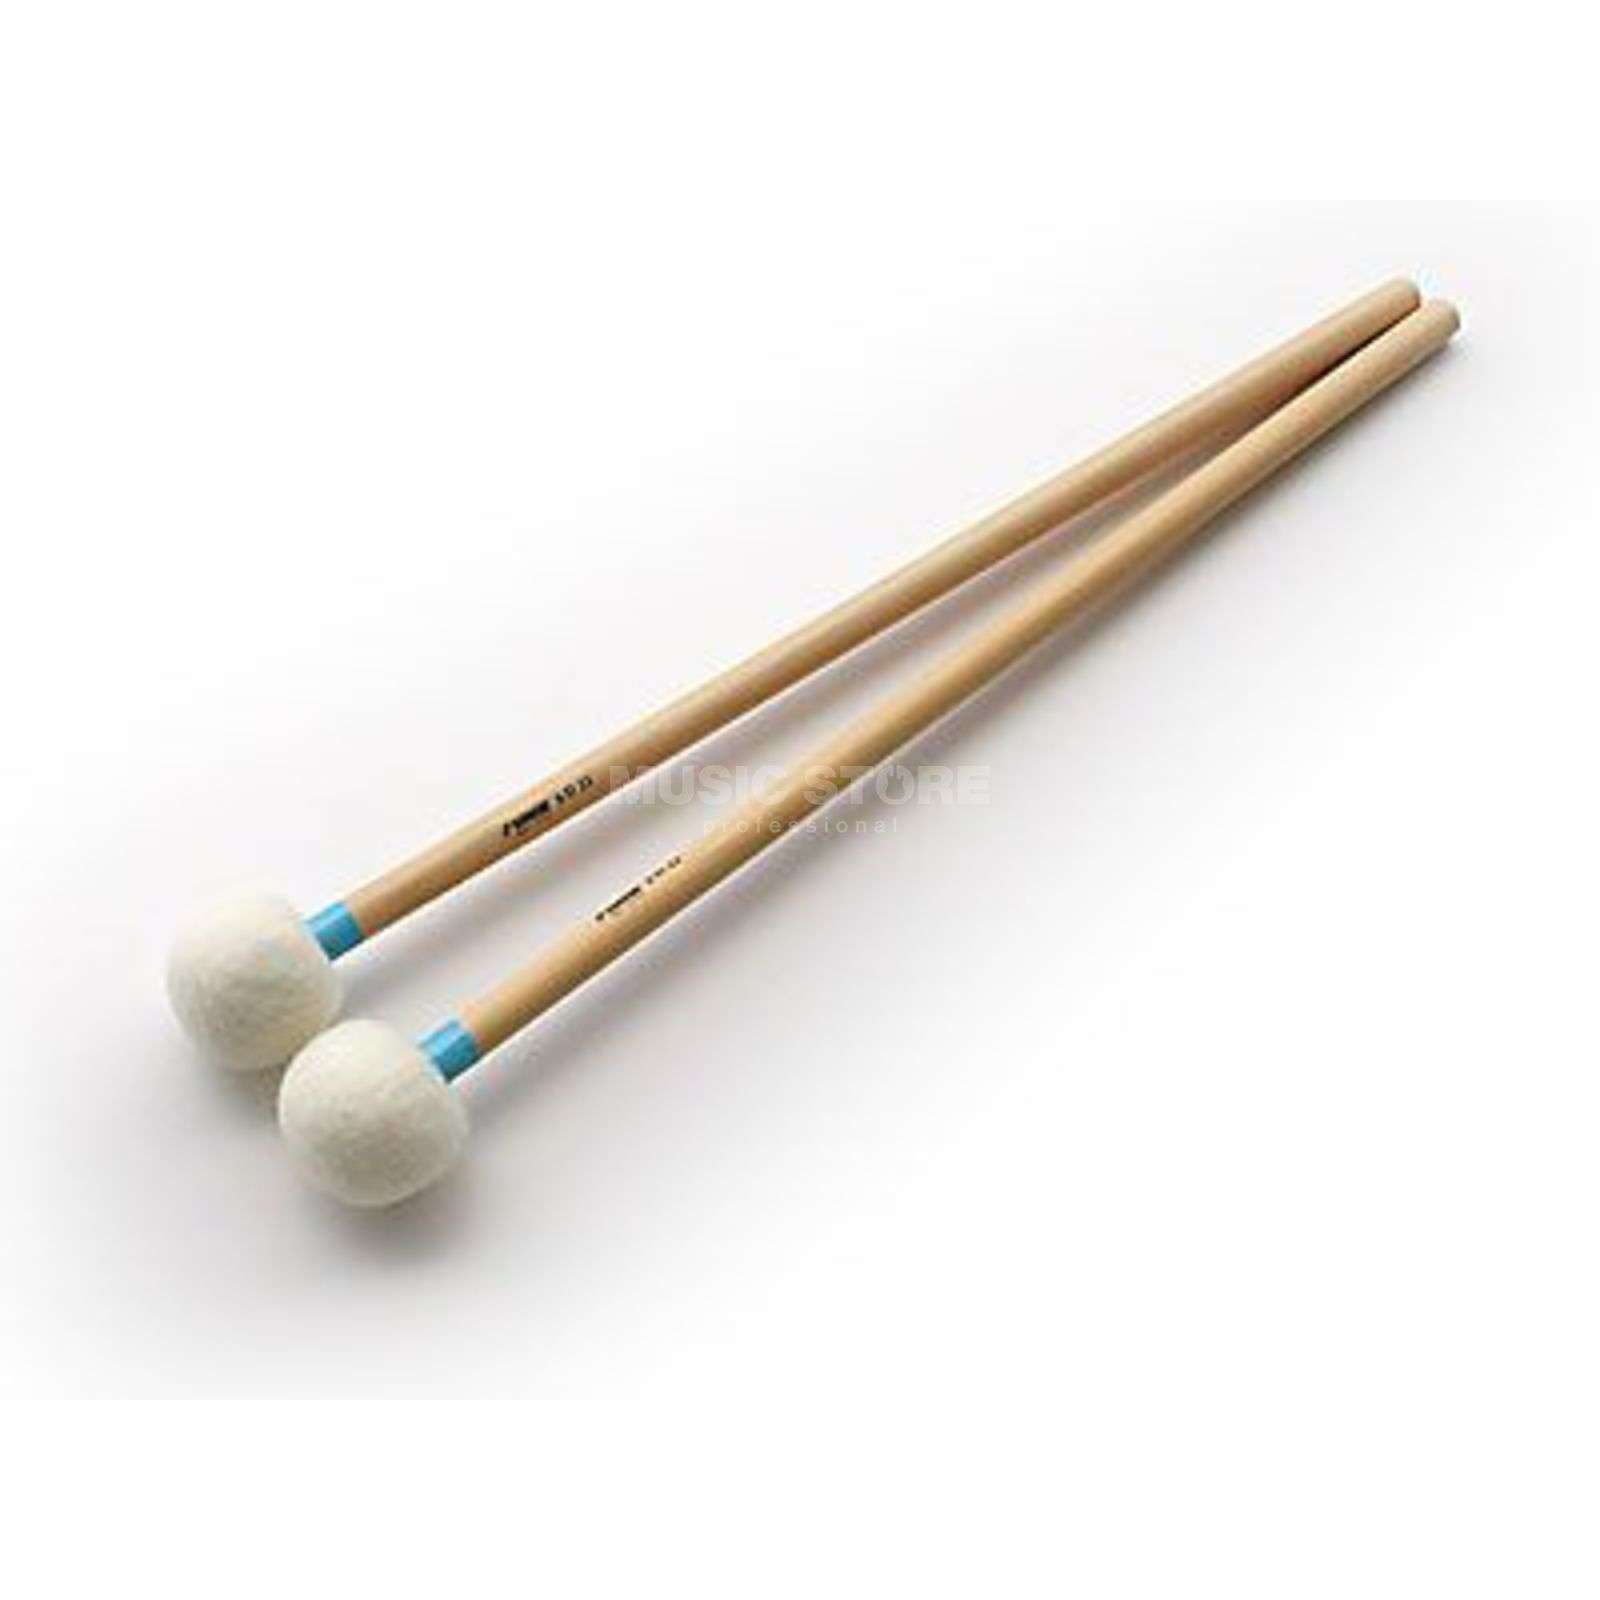 Sonor Timpani Mallet STI 22, Junior, Felt, Medium Soft Product Image